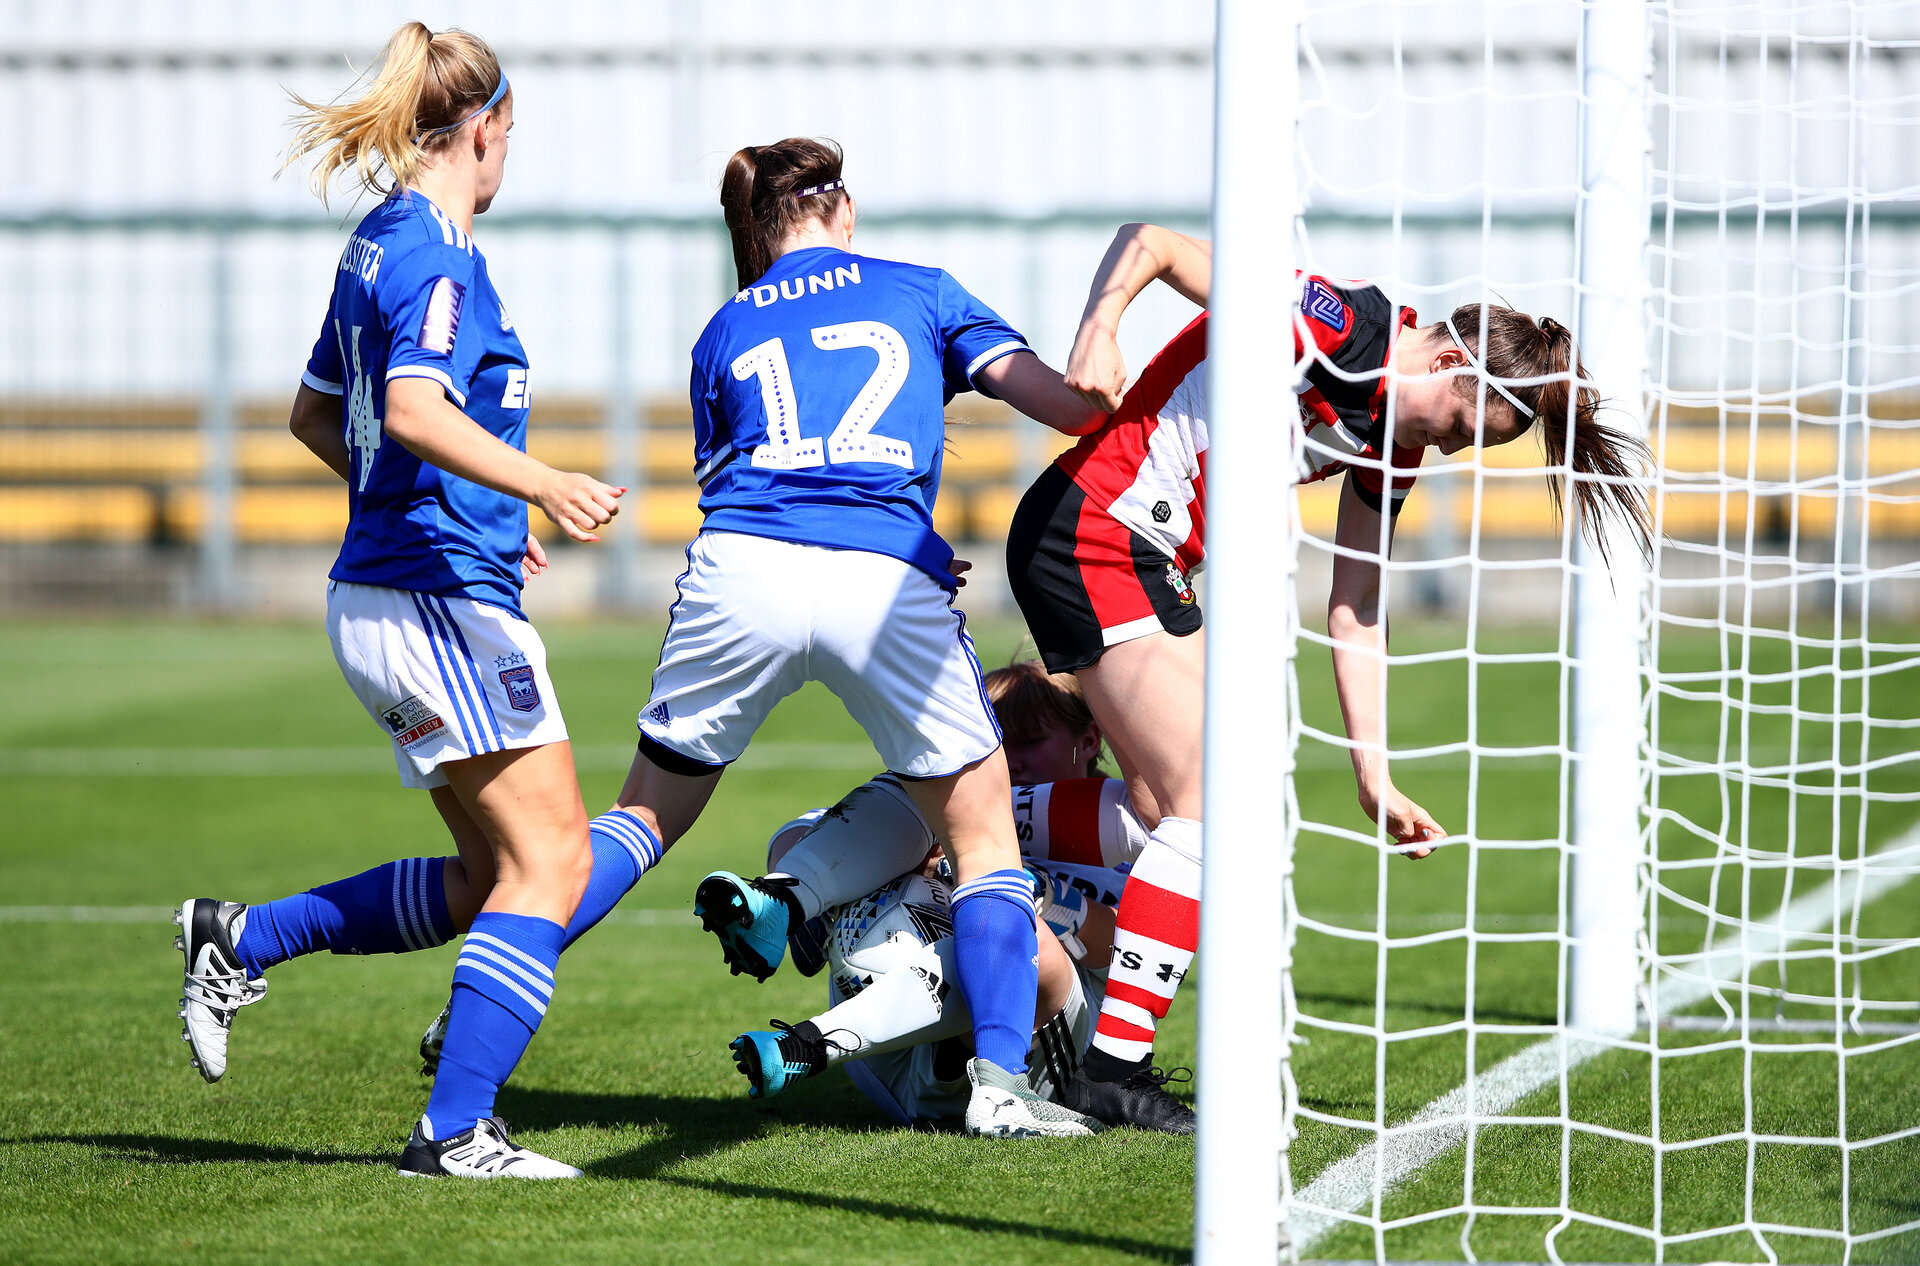 SOUTHAMPTON, ENGLAND - AUGUST 25: during the match between Southampton FC Women and Ipswich Town Women, at AFC Totton's Testwood Park, Totton, on August 25, 2019 in Southampton, England. (Photo by Matt Watson/Southampton FC via Getty Images)